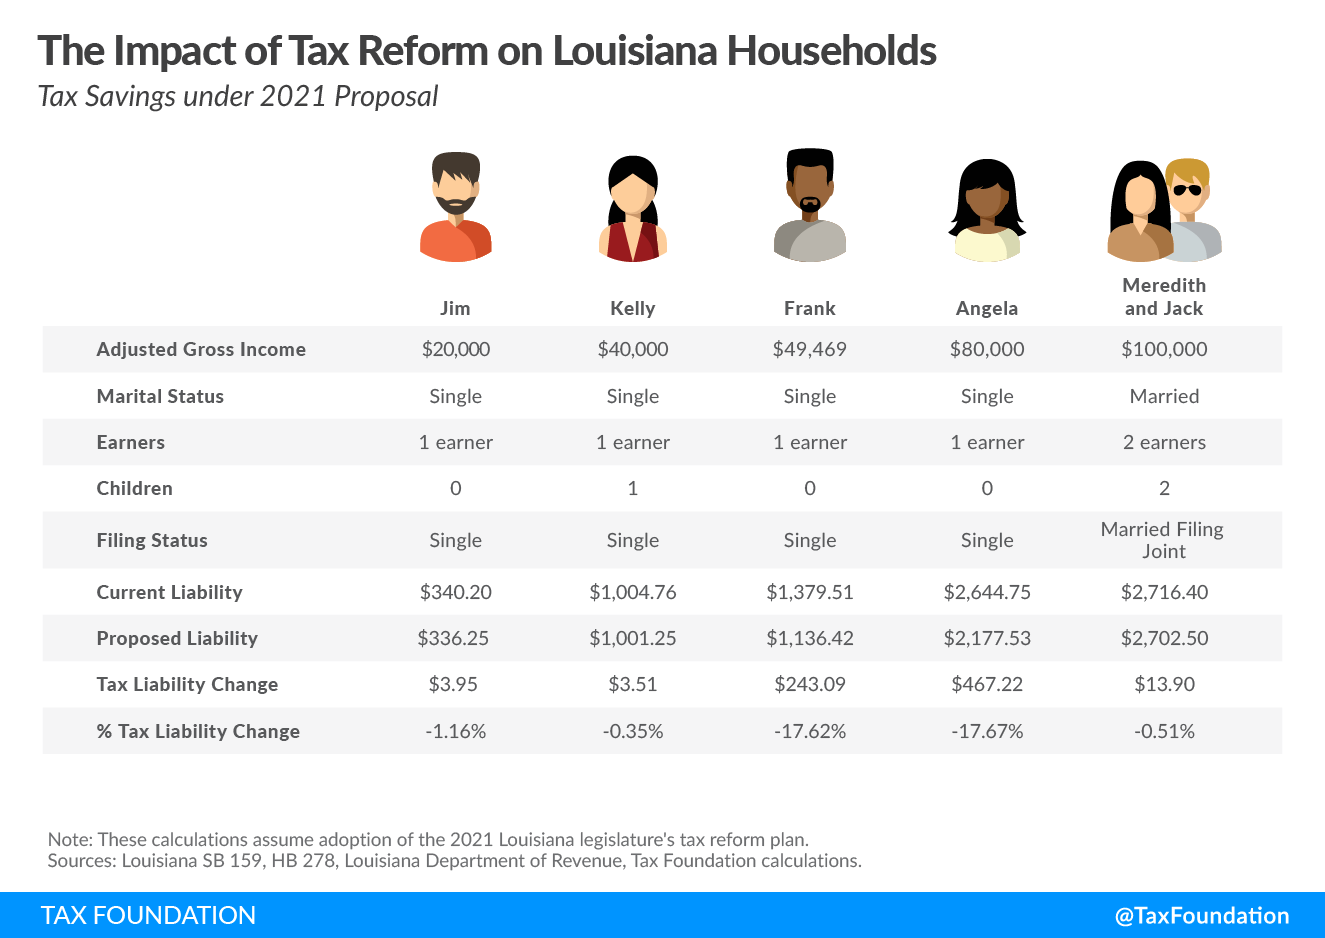 Louisiana Voters Have Chance to Simplify Taxes and Lower Burdens